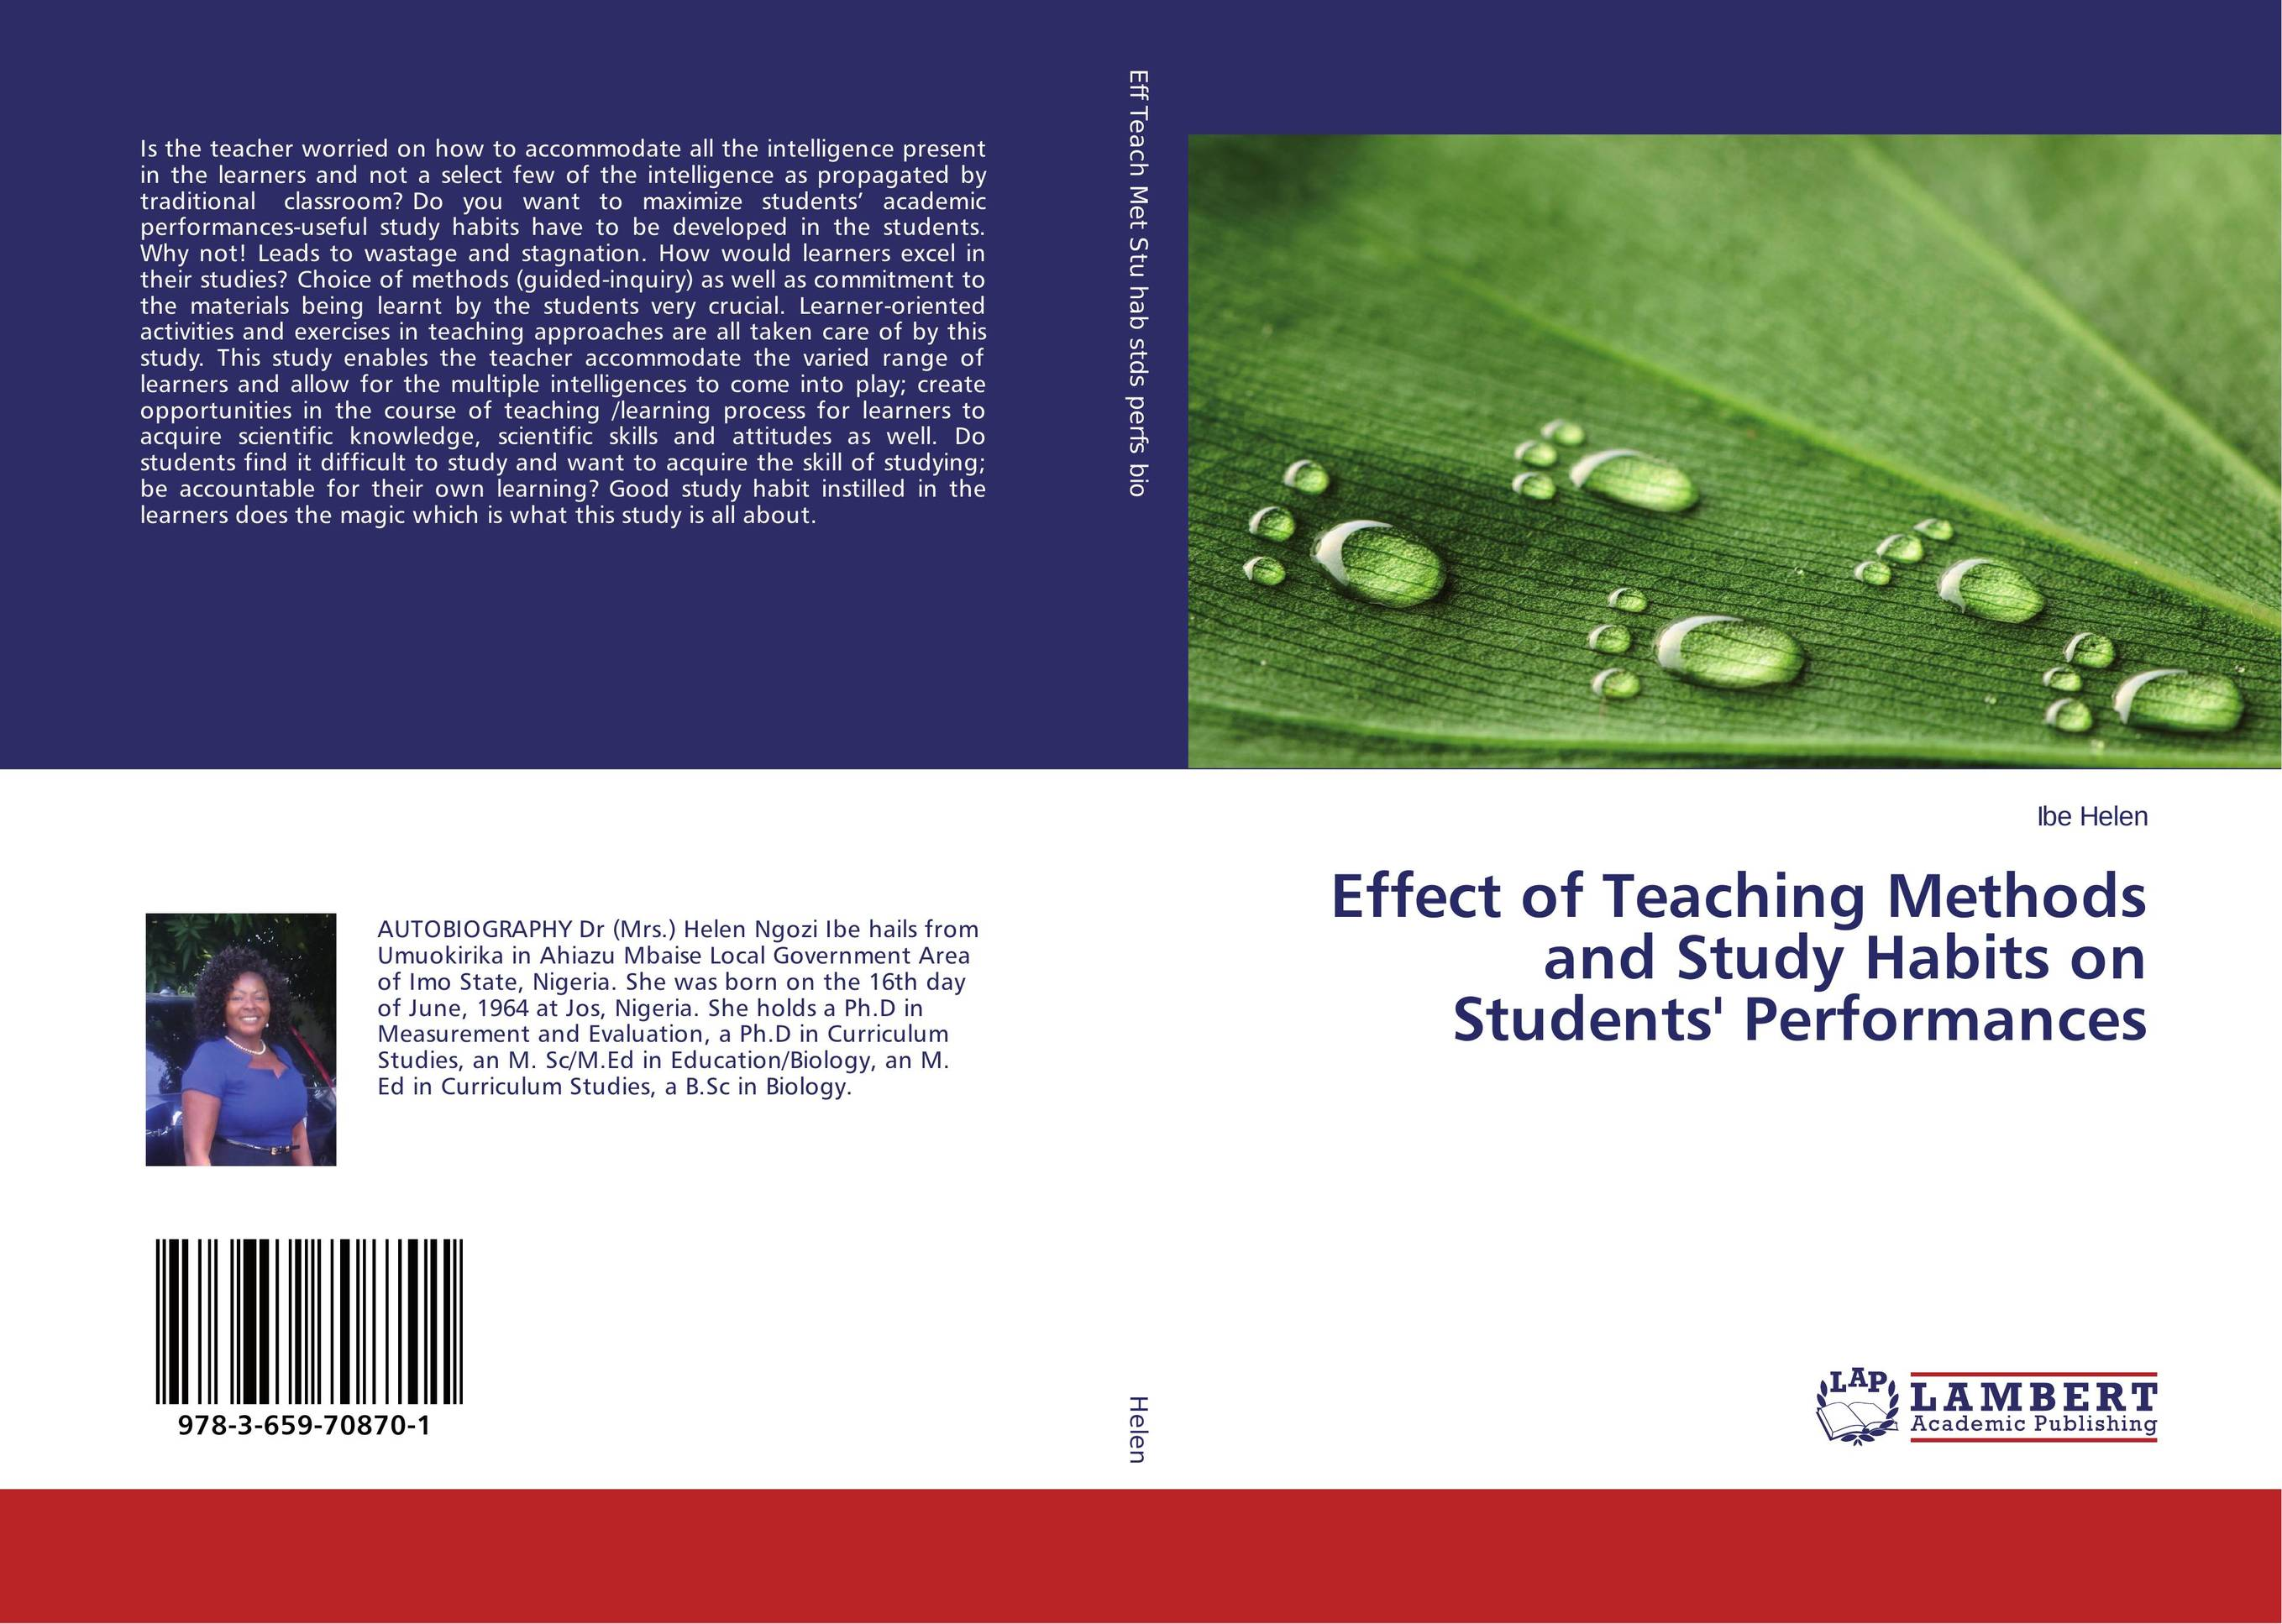 Effect of Teaching Methods and Study Habits on Students' Performances stanley pogrow teaching content outrageously how to captivate all students and accelerate learning grades 4 12